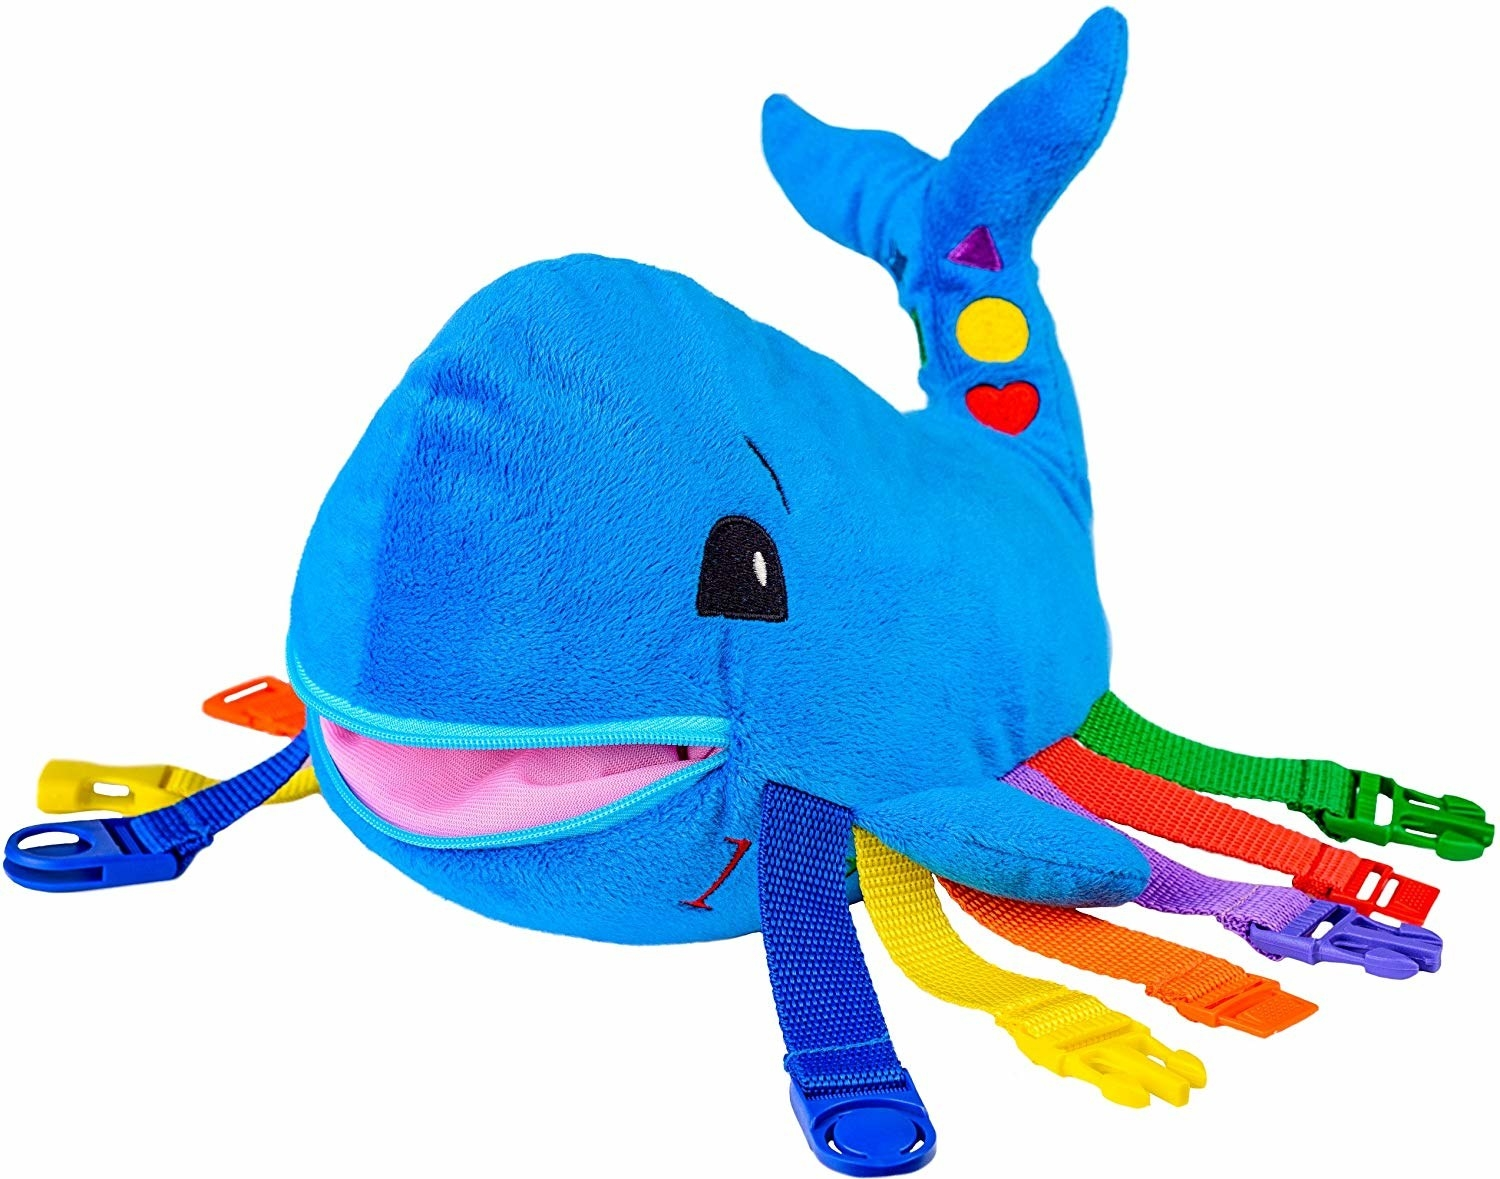 Blue plush whale toy with colorful straps and buckles